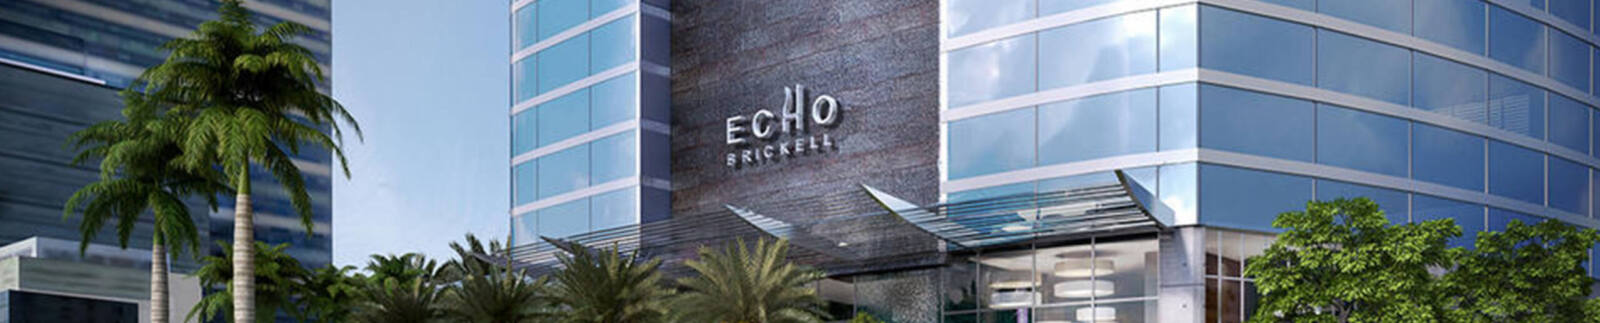 Echo Brickell Fire Sprinkler System Design